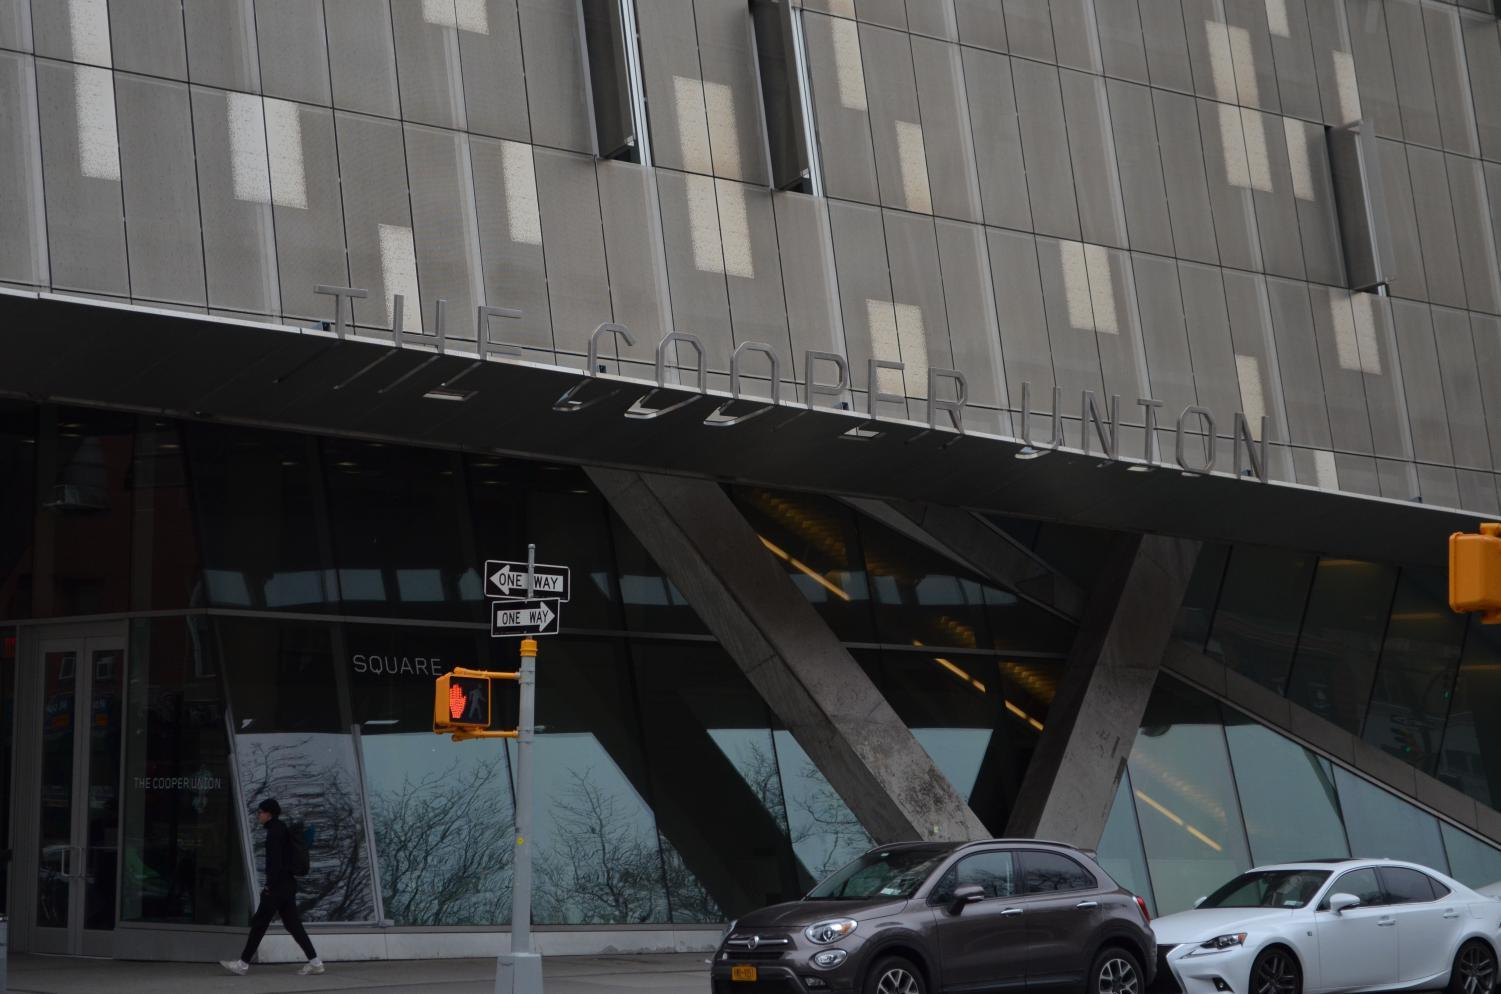 A pedestrian walks past 41 Cooper Square, which houses many of The Cooper Union's classrooms and studios.